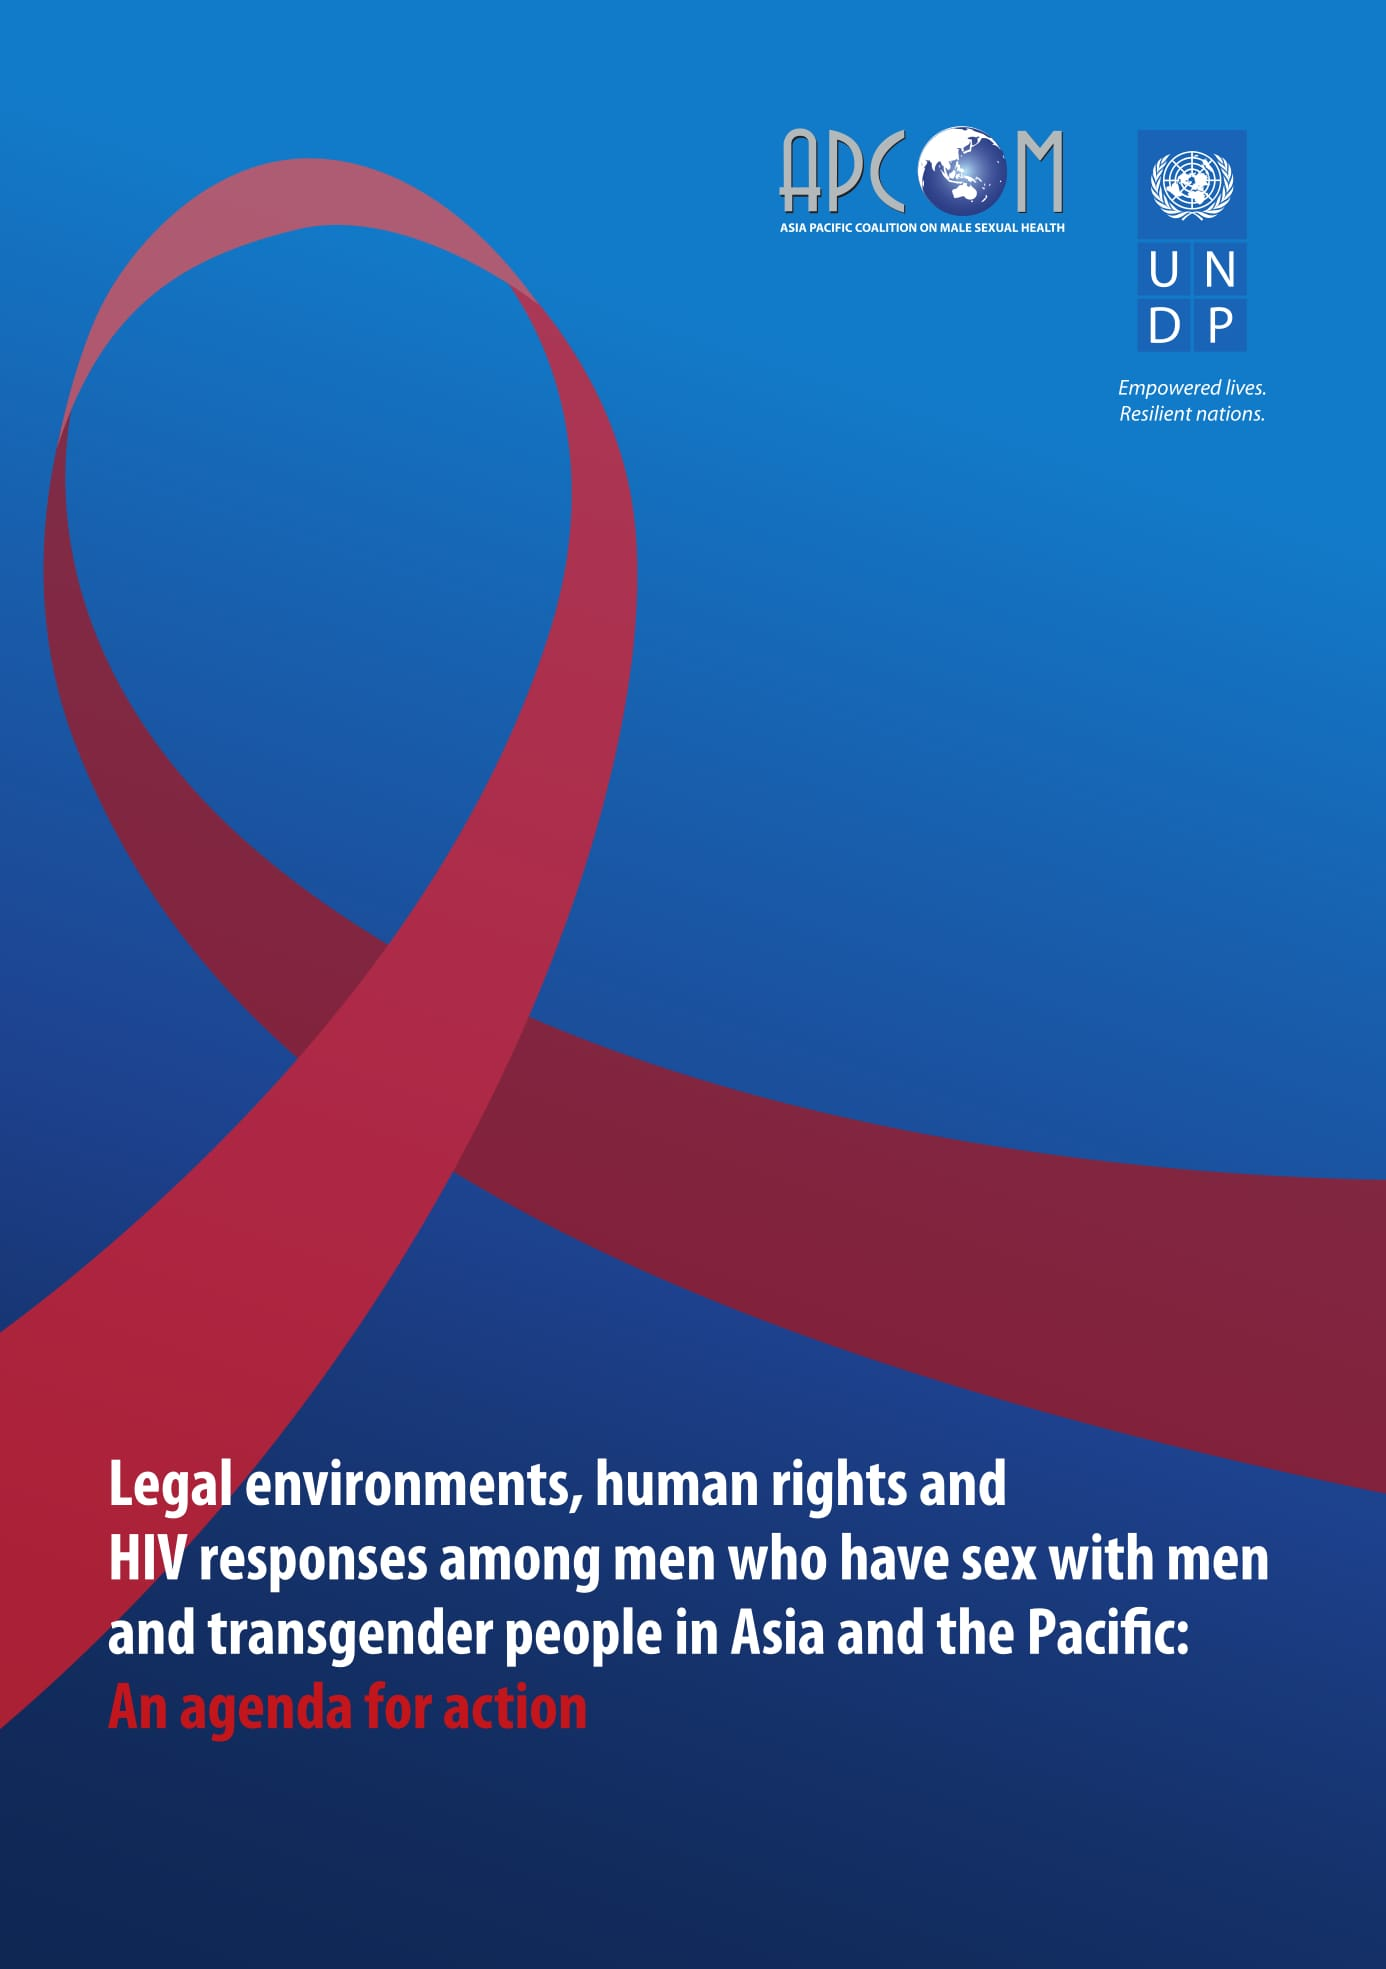 Legal environments, human rights and HIV responses among men who have sex with men and transgender people in Asia and the Pacific: An agenda for action